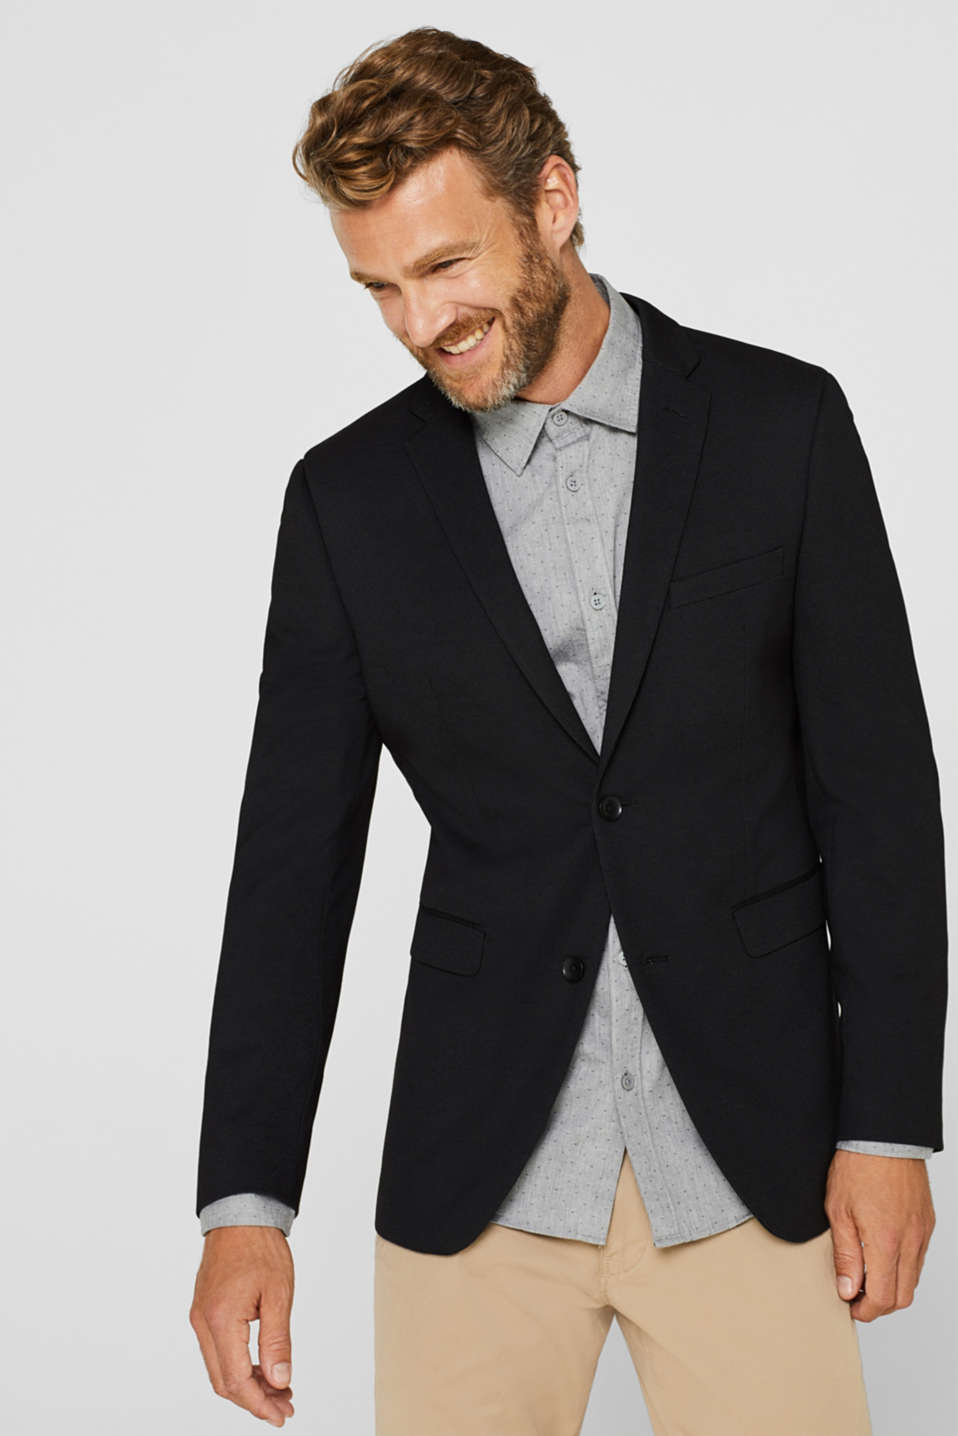 Esprit - COMFORT SUIT mix + match: Textured jacket